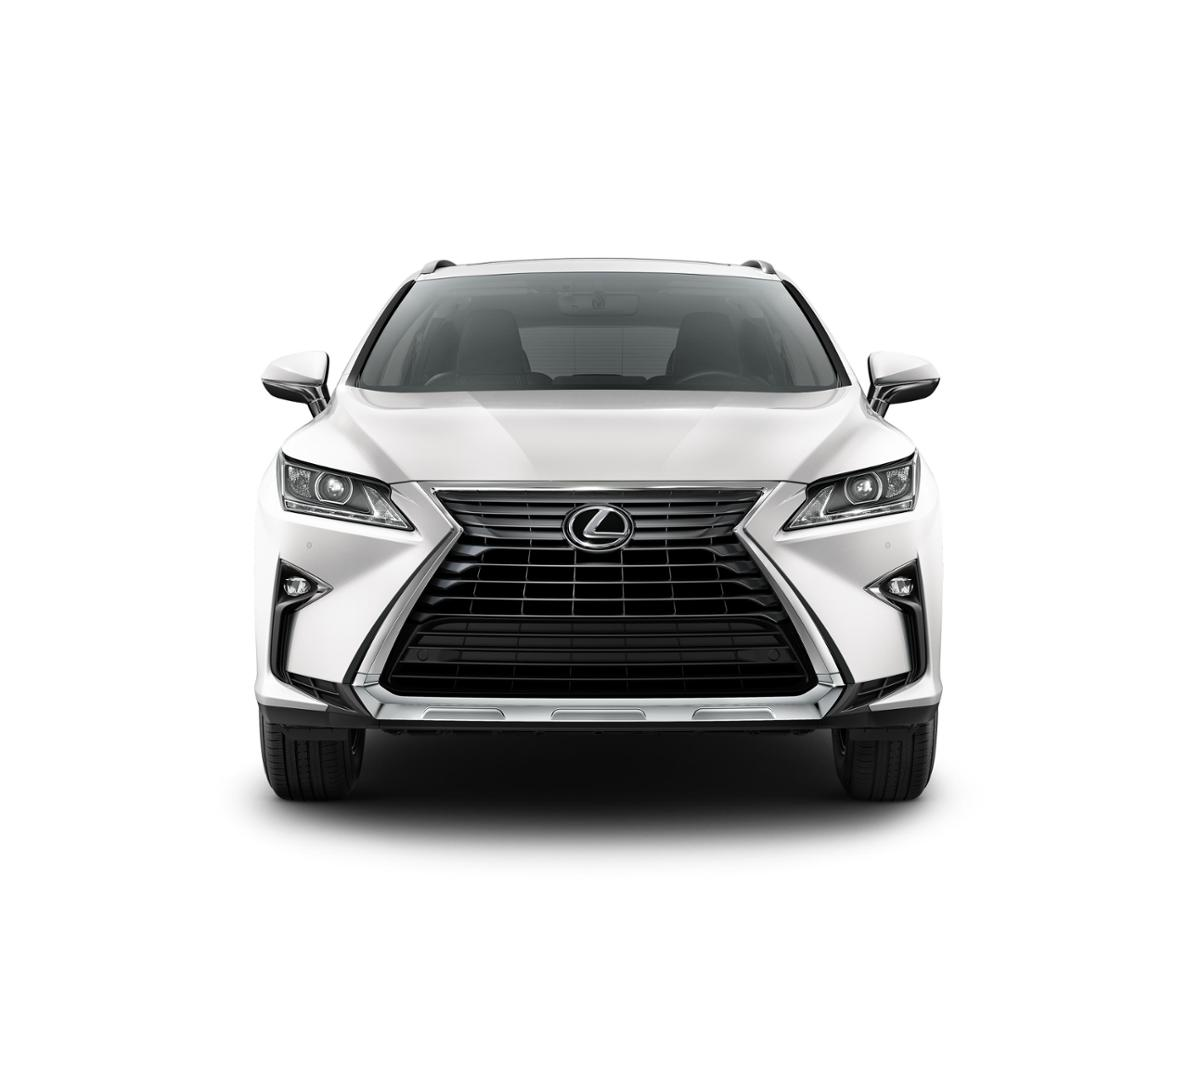 Lexus Rx 350 Lease: 2018 Eminent White Pearl RX 350 Lexus RX 350 For Sale In